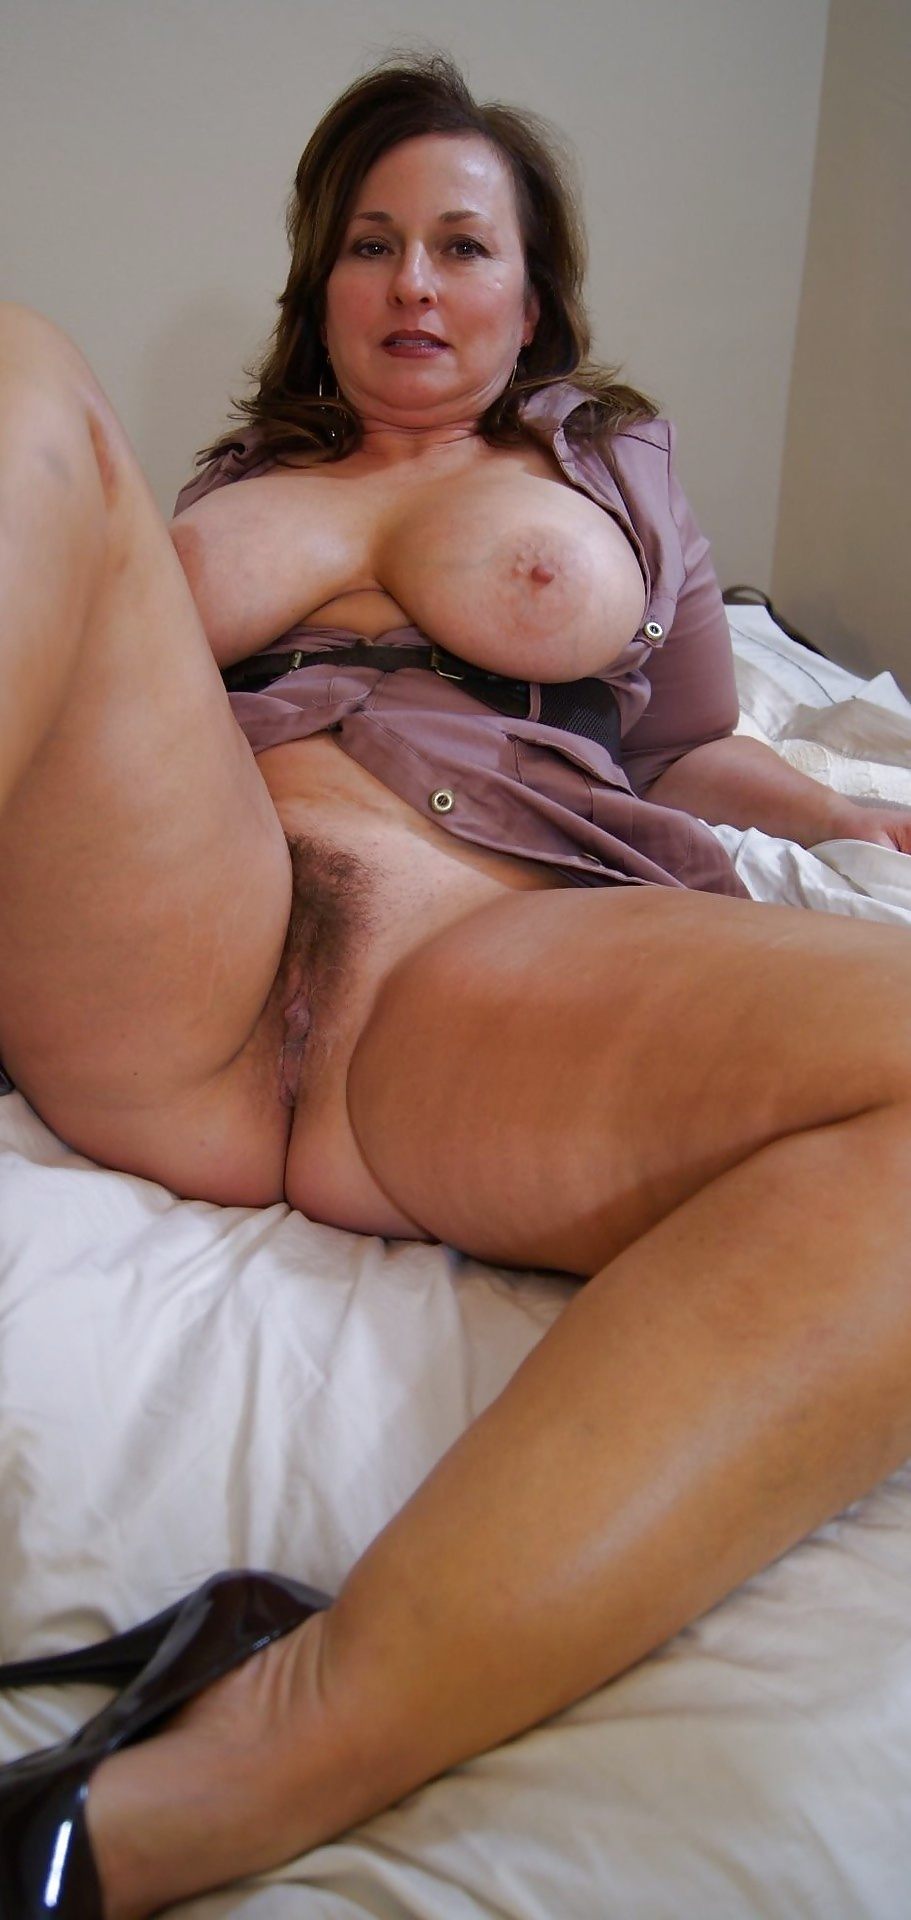 Interracial milf big tits